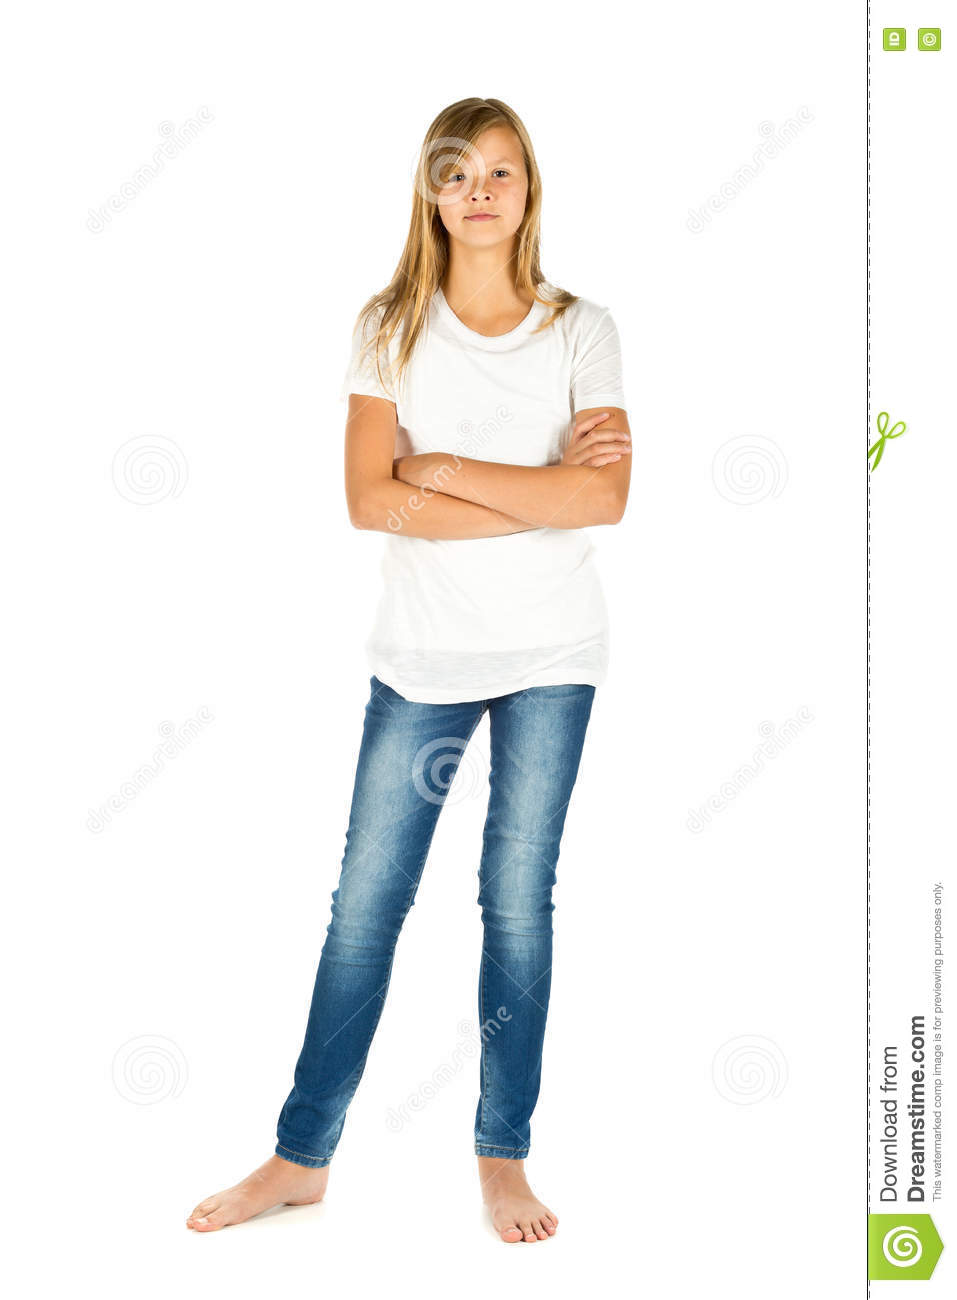 White t shirt and blue jeans - Young Girl Standing With White T Shirt And Blue Jeans Over White